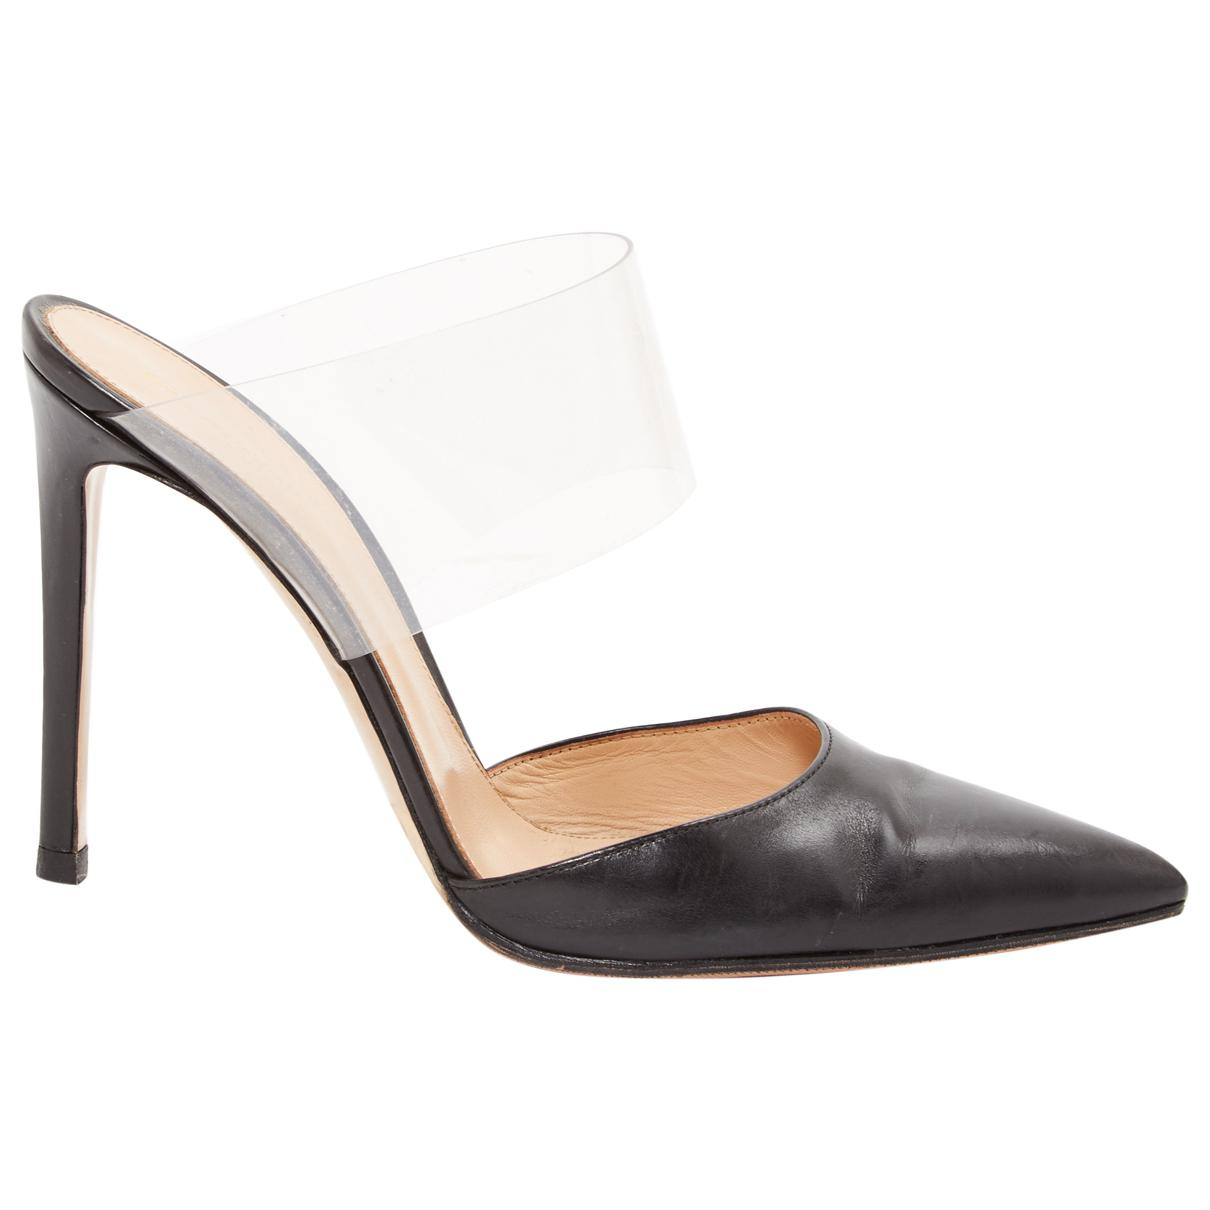 Pre-owned - Leather heels Gianvito Rossi kfDilS